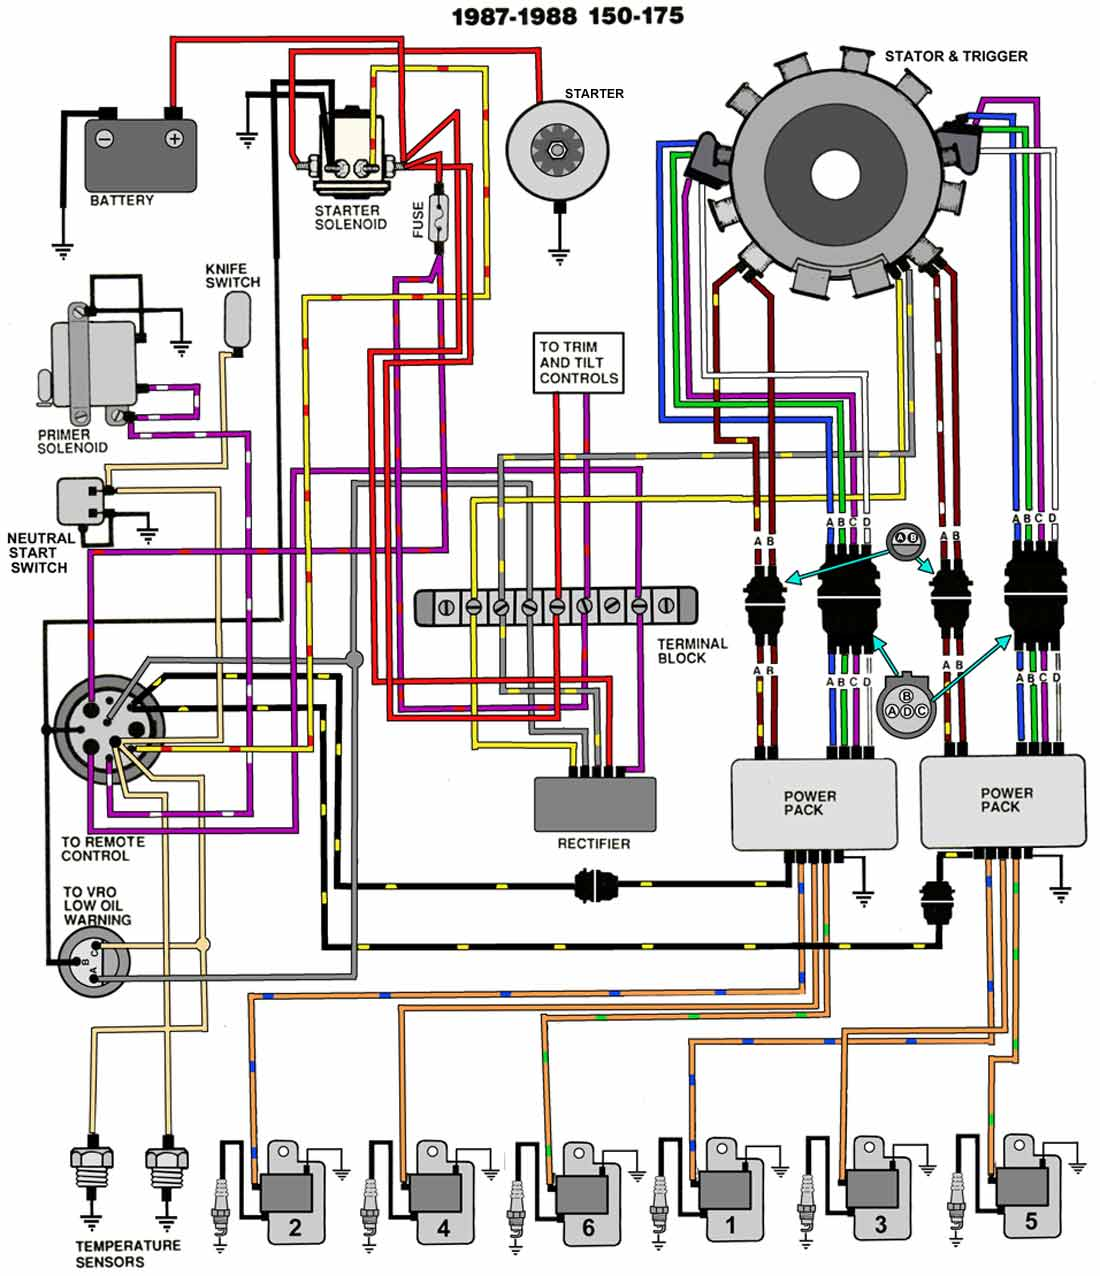 87_88_150_175 pdf] evinrude 88 spl manual (28 pages) evinrude 88 spl manual johnson outboard wiring schematic at webbmarketing.co